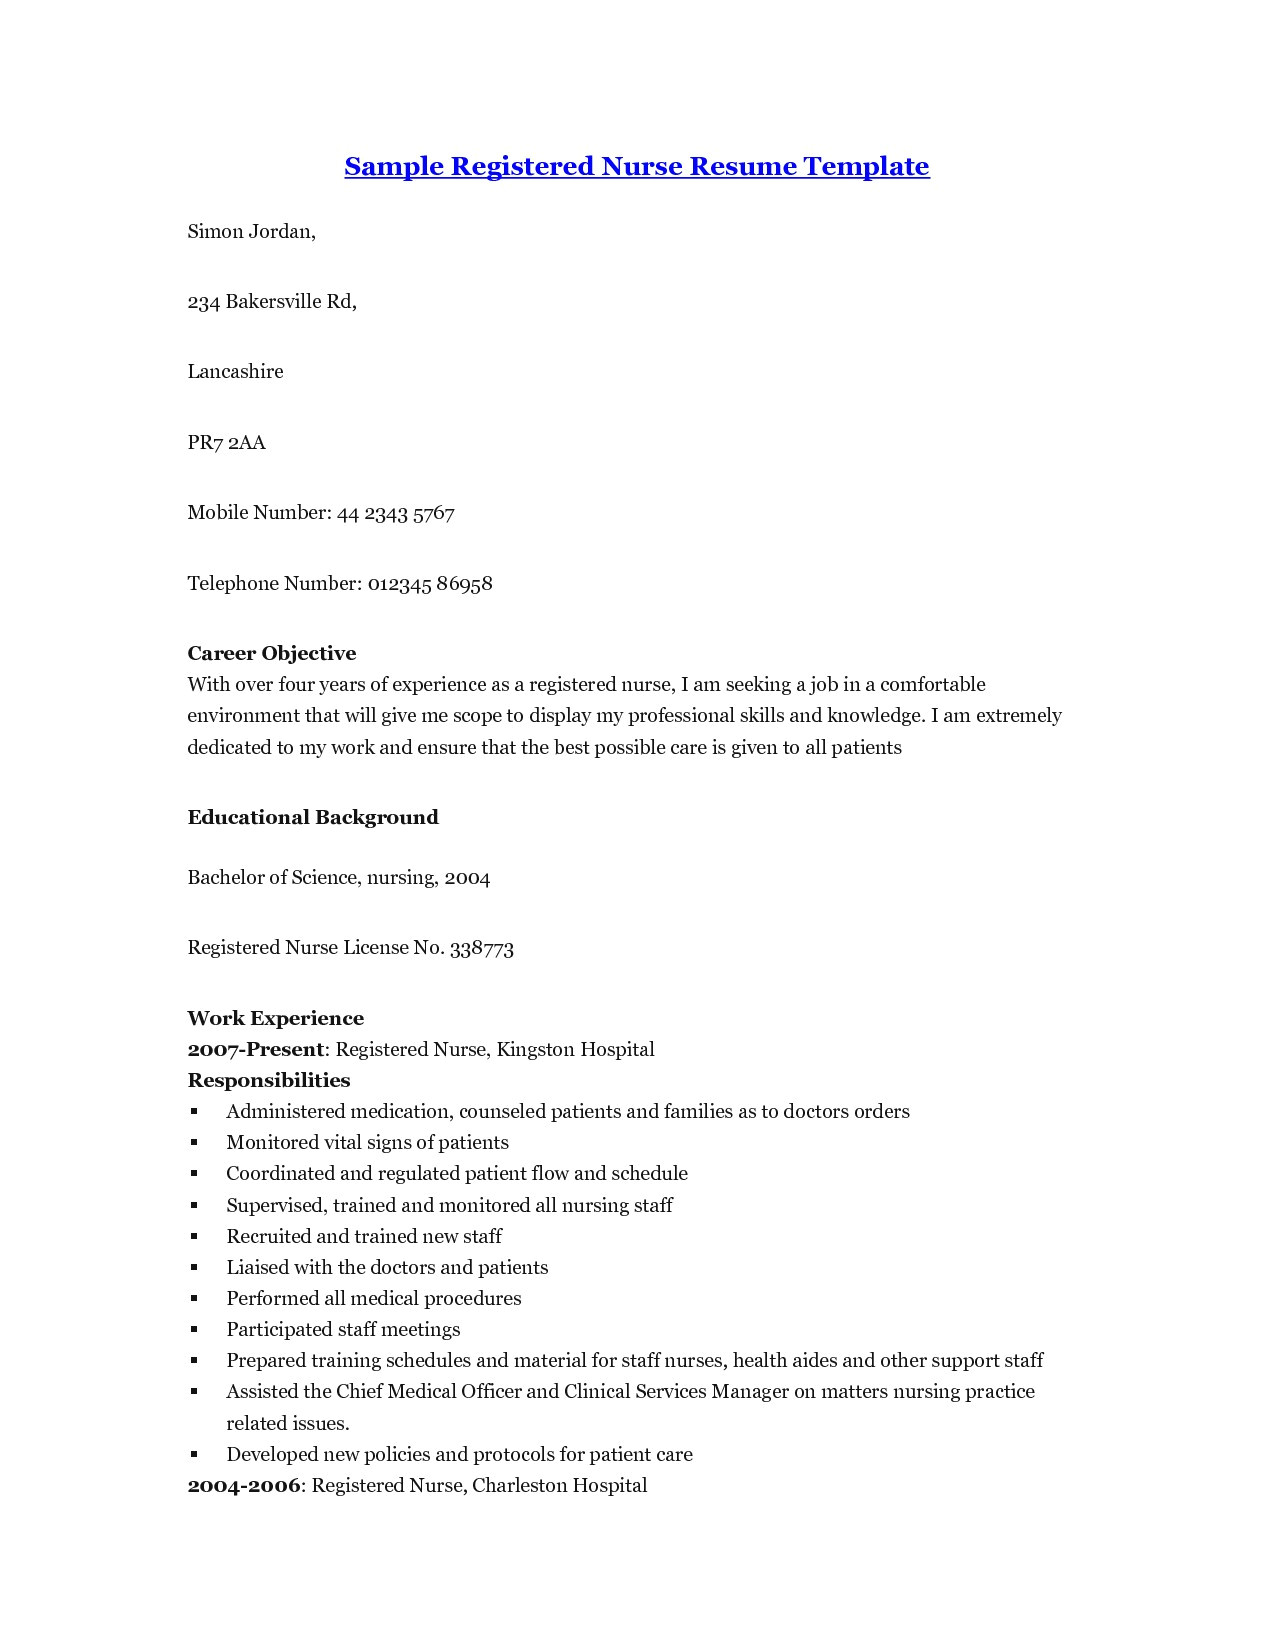 Cover Letter for Lpn with No Experience Lpn Resume with No Experience Sample Resume Registered